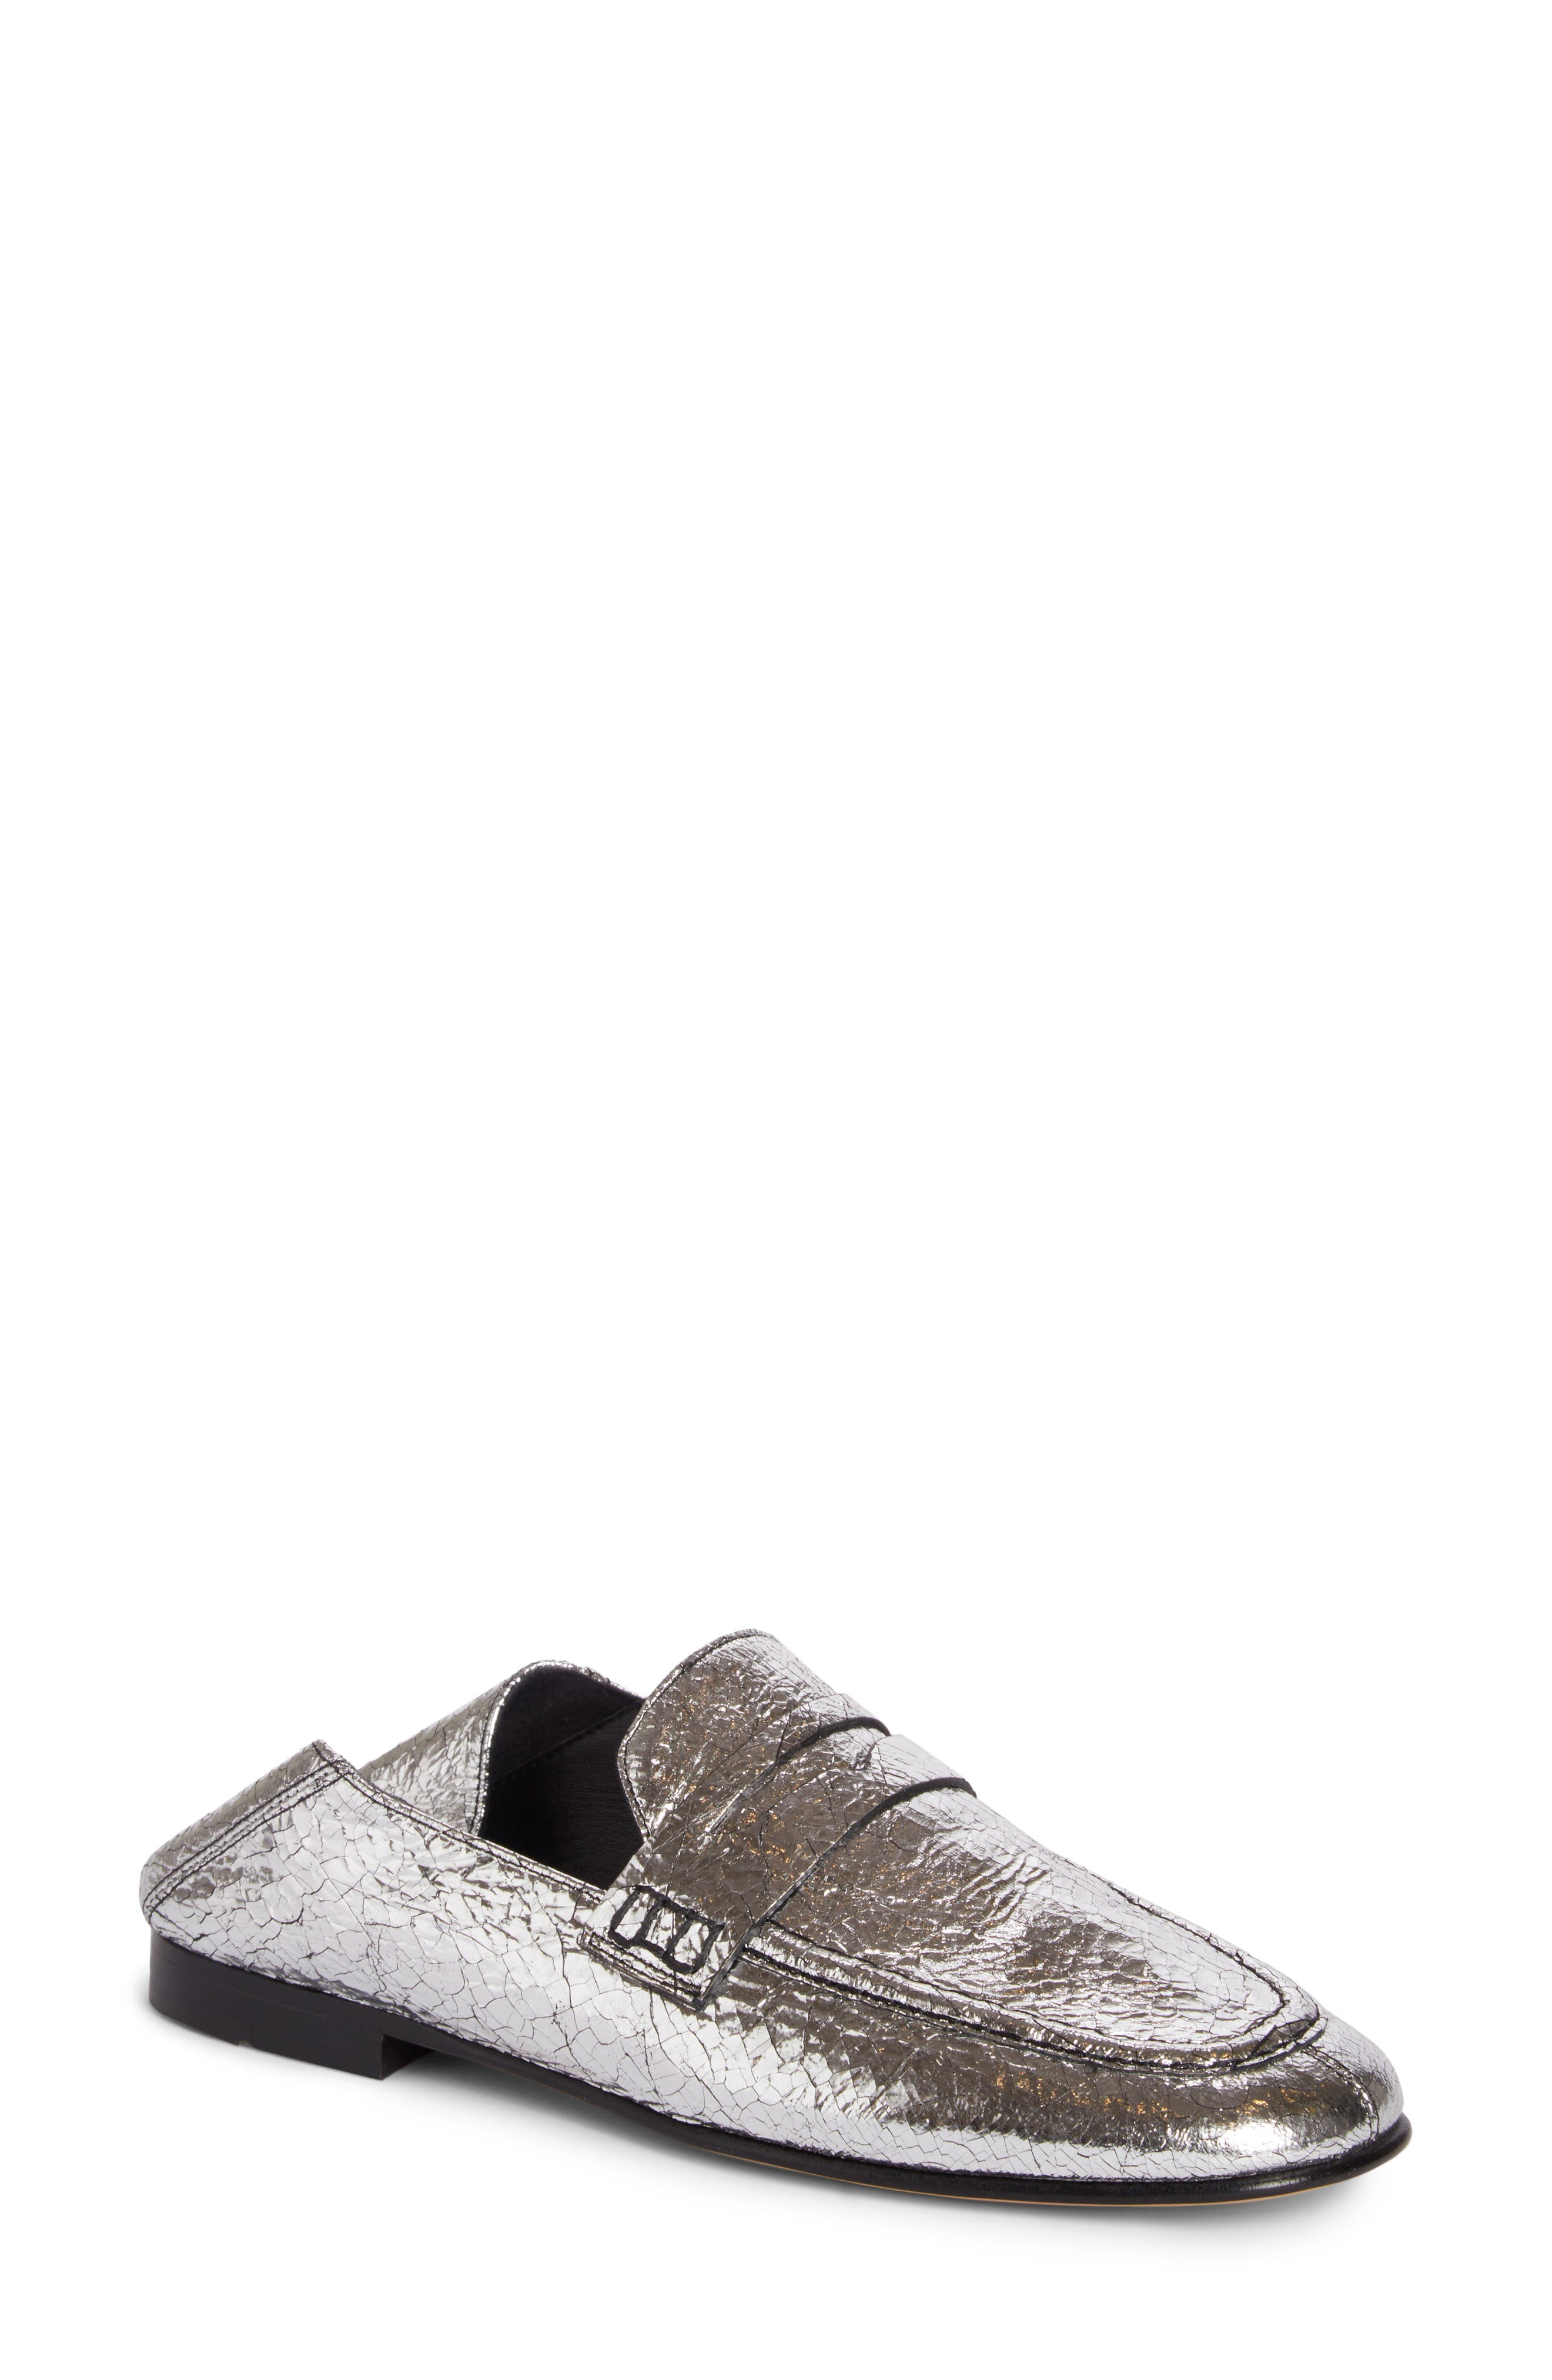 Alternate Image 1 Selected - Isabel Marant Fezzy Convertible Loafer (Women)